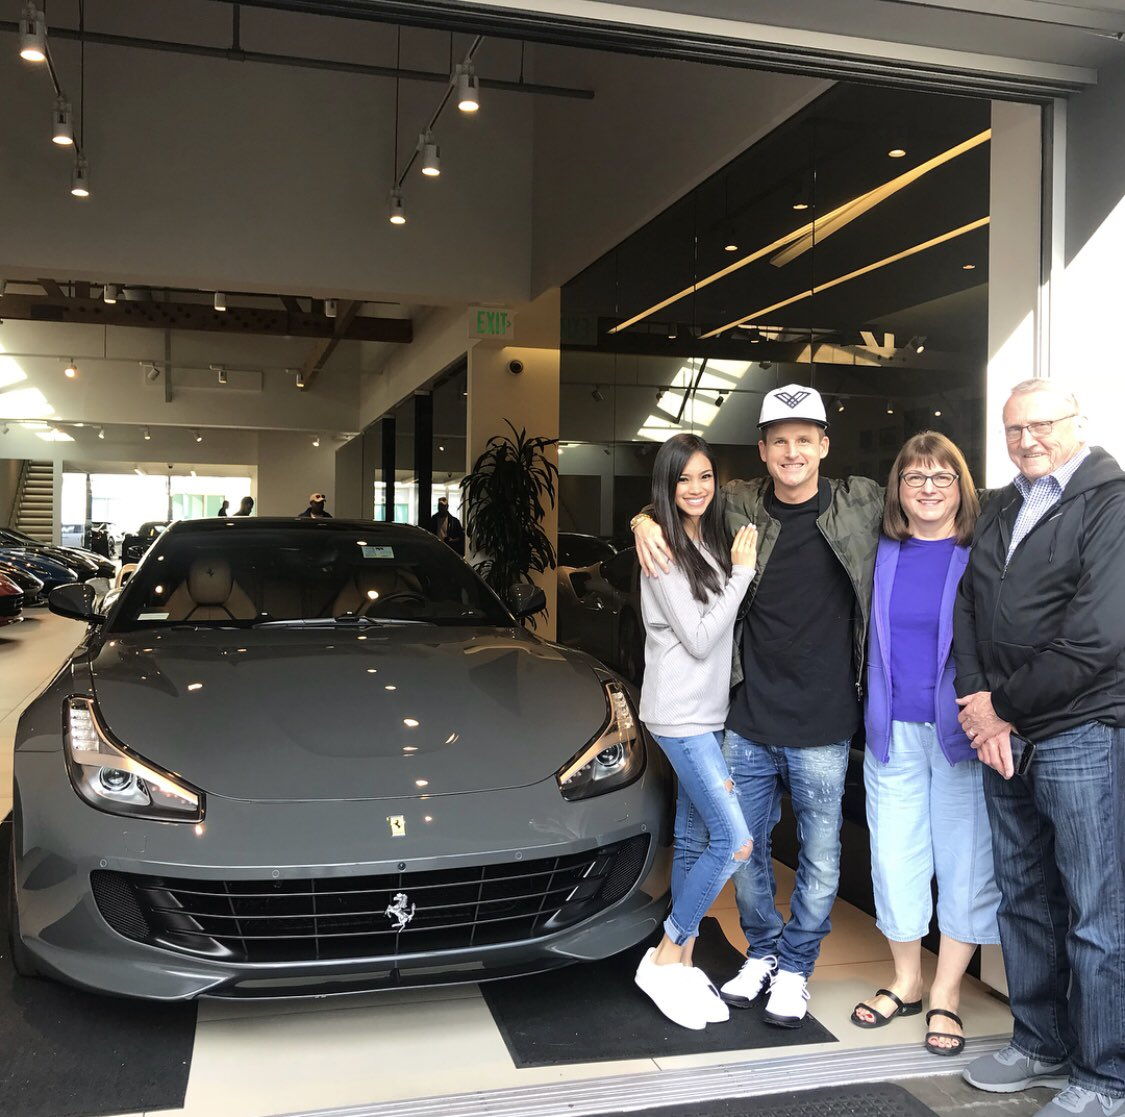 Rob Dyrdek On Twitter Picked Up A Ferrari Gtc4lusso With The Family Today Although No Part Of Patdyr Thinks The Price Tag Is Worth It Her And Gene Appreciated The Leg Room